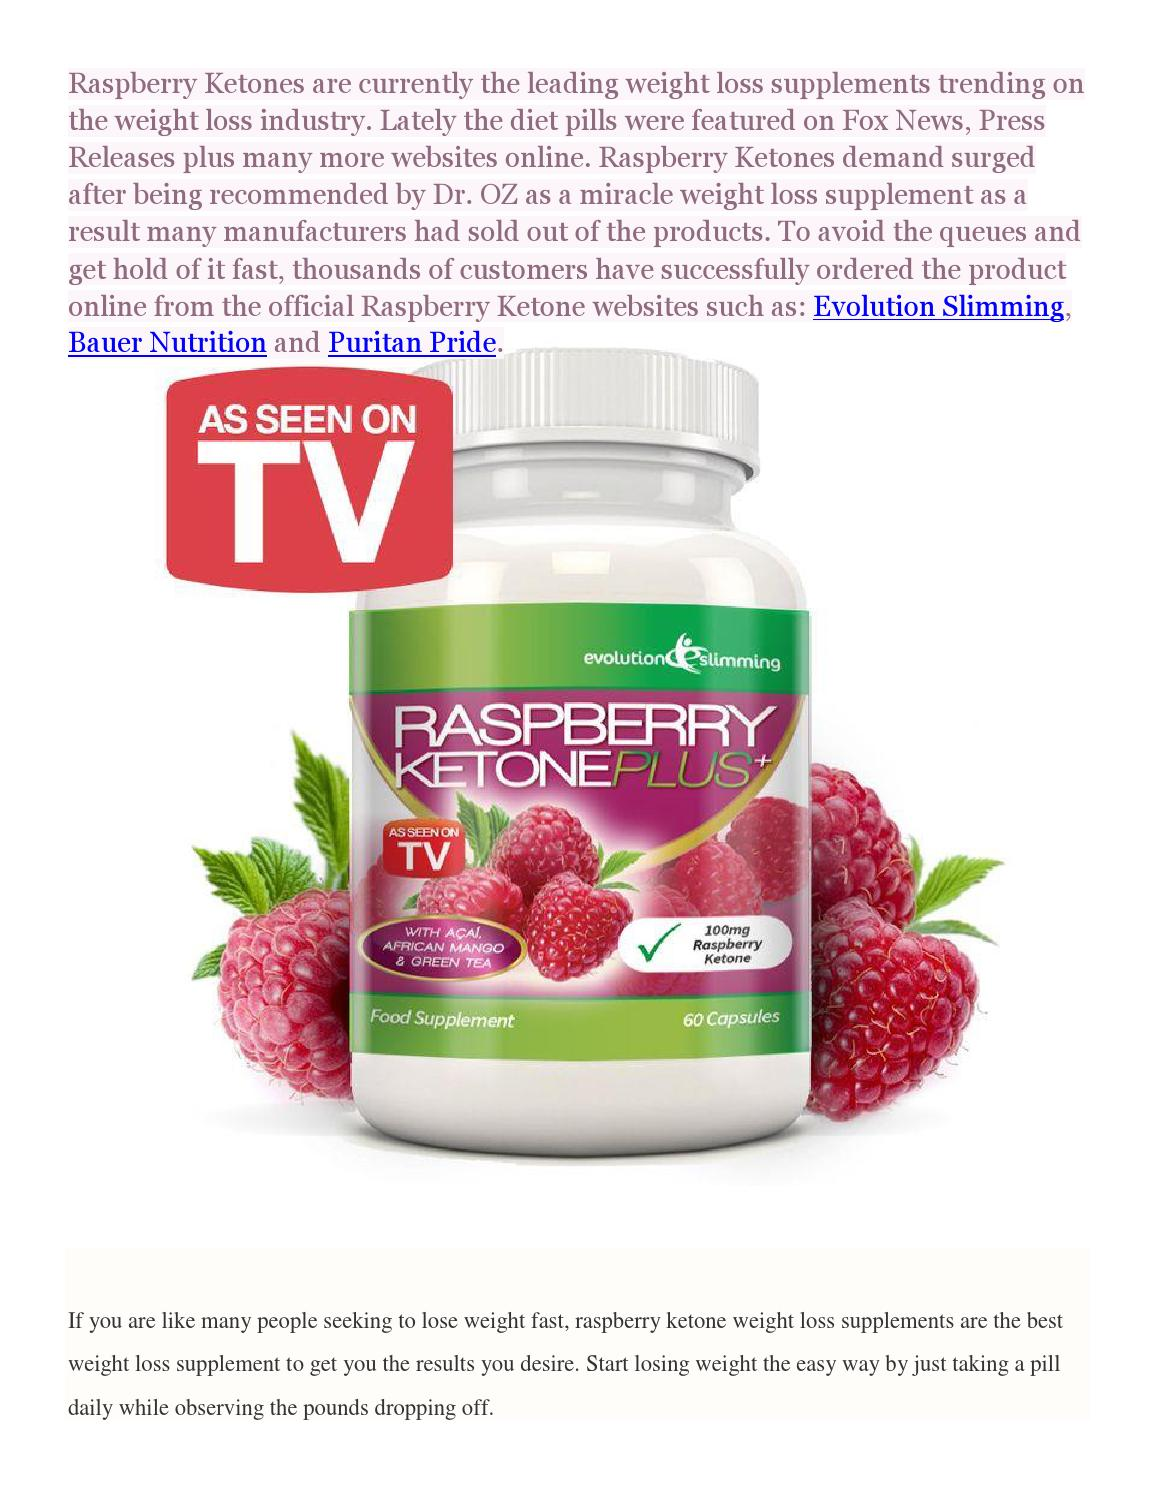 Raspberry Ketones Weight Loss Supplement Review Side Effects By Ledhealthandfitness Issuu